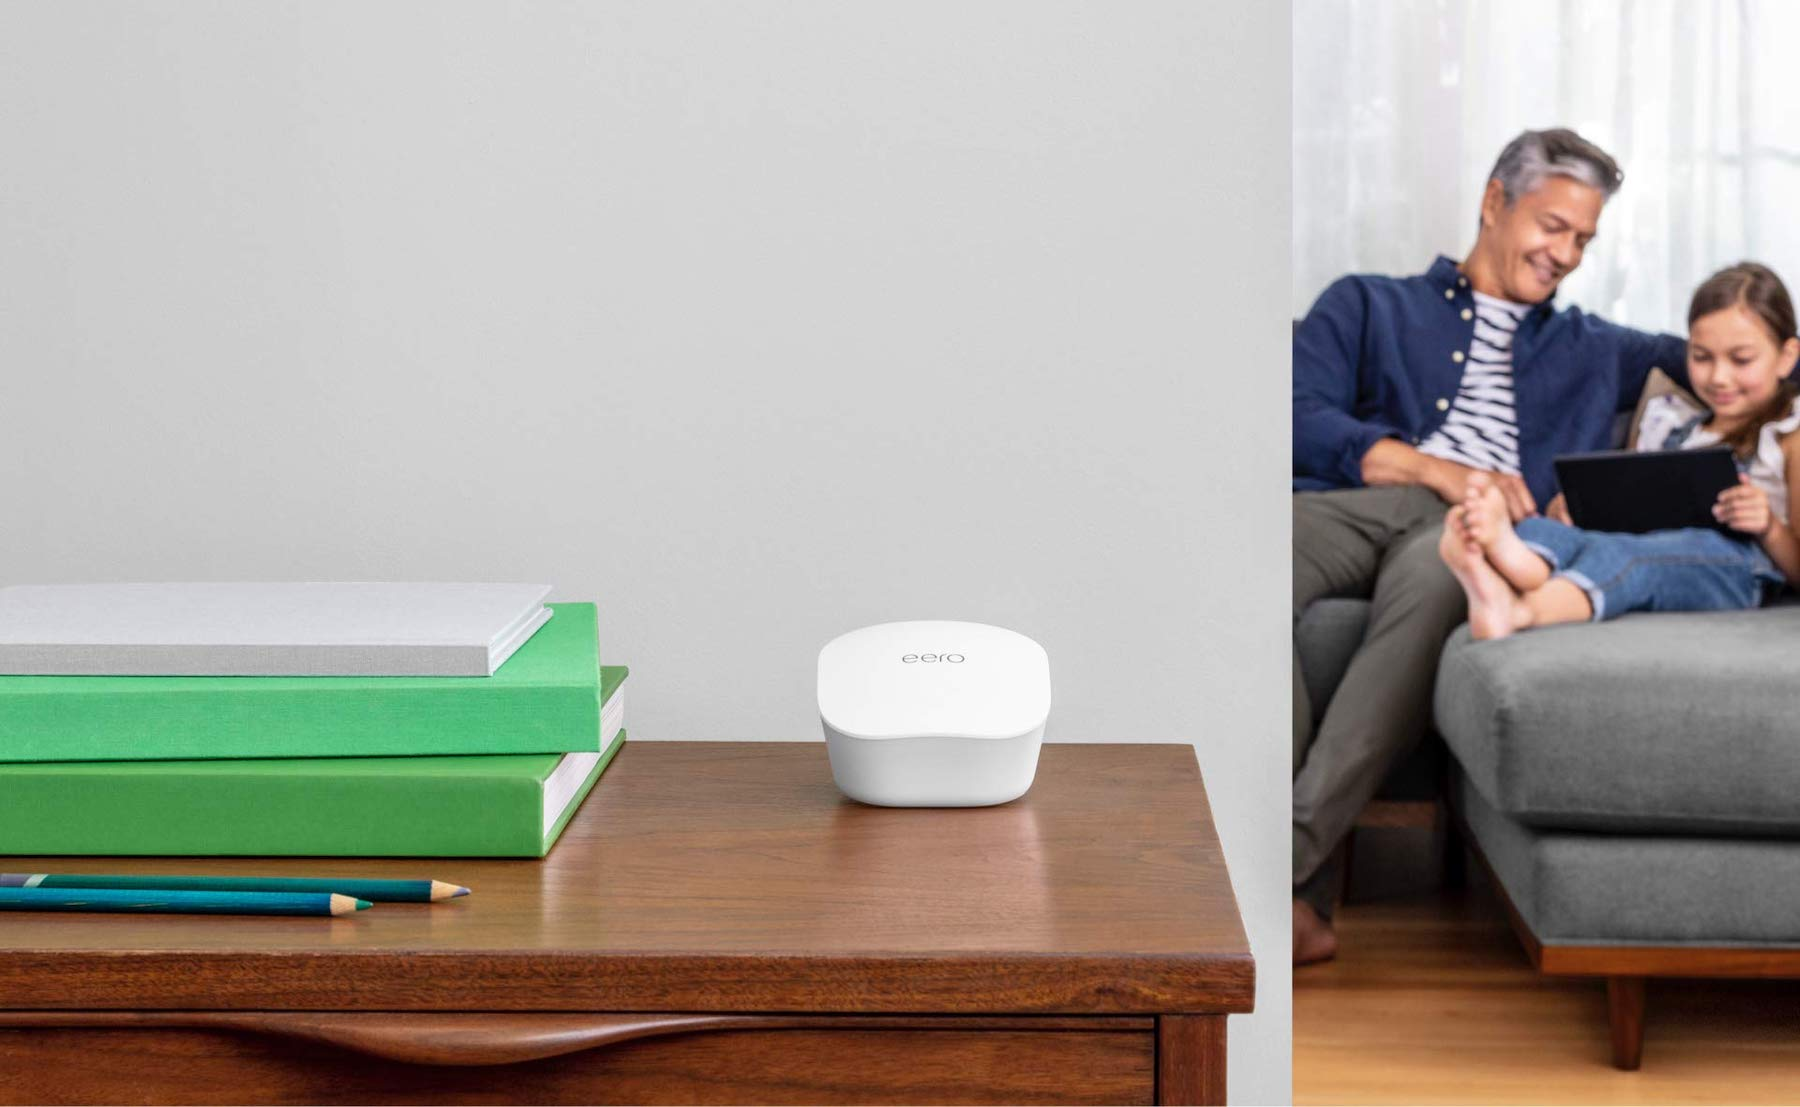 eero Mesh Wi-Fi Router Whole-Home Internet System gives your home up to 1,500 square feet of fast internet